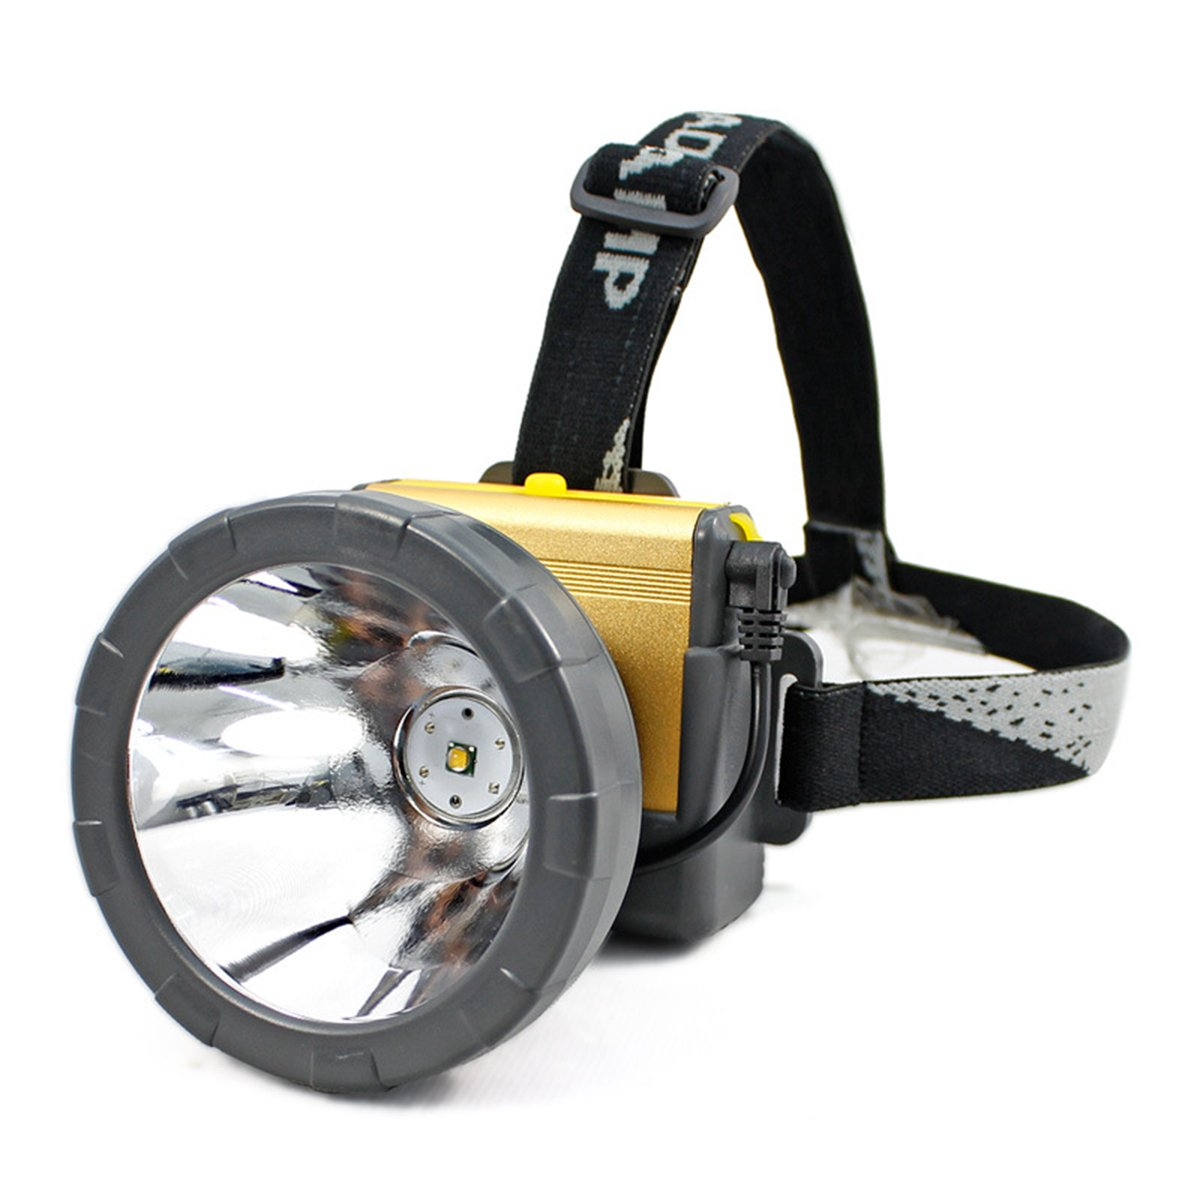 Adjustable Waterproof Rechargeable LED Headlamp Flashlight for Mining ,Camping, Hiking, Fishing